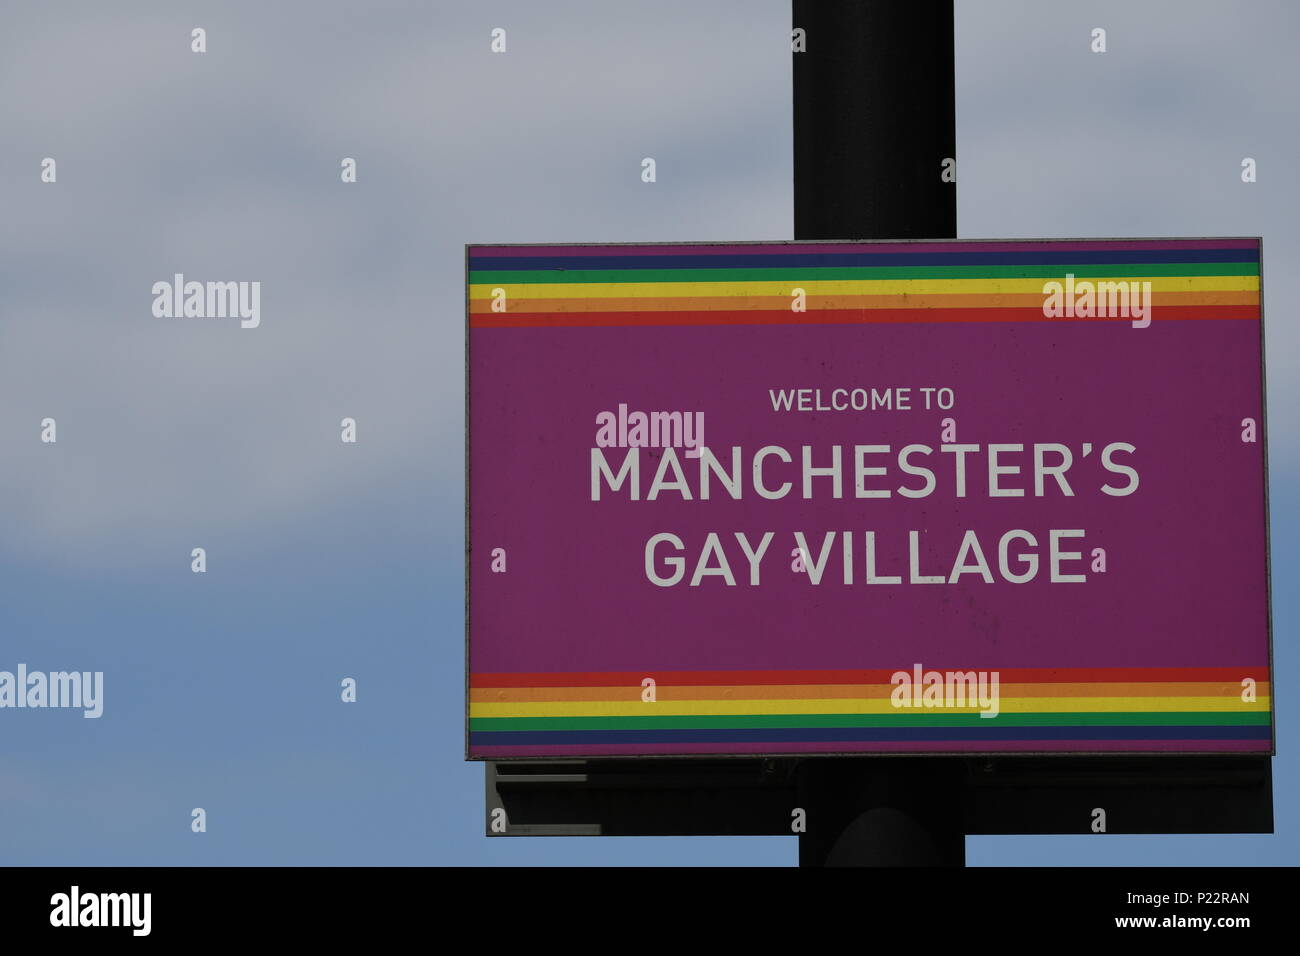 Manchester Gay Village sign - Stock Image